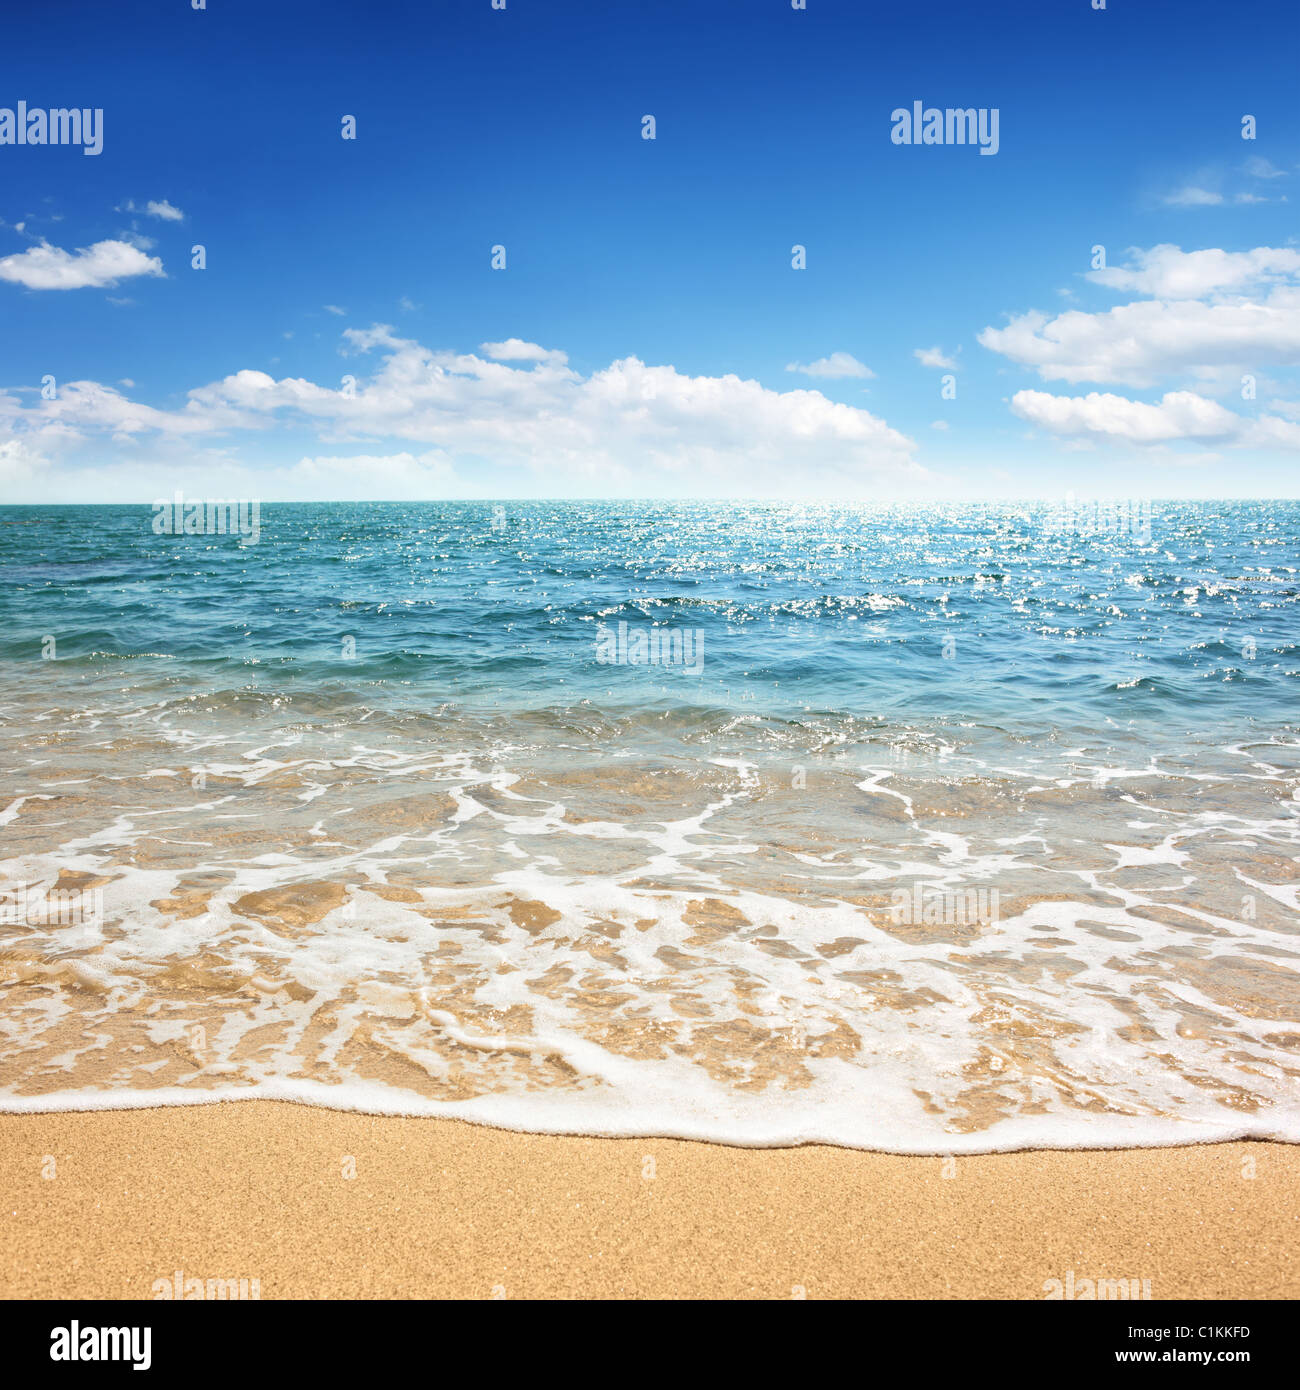 beach and tropical sea for use as background - Stock Image